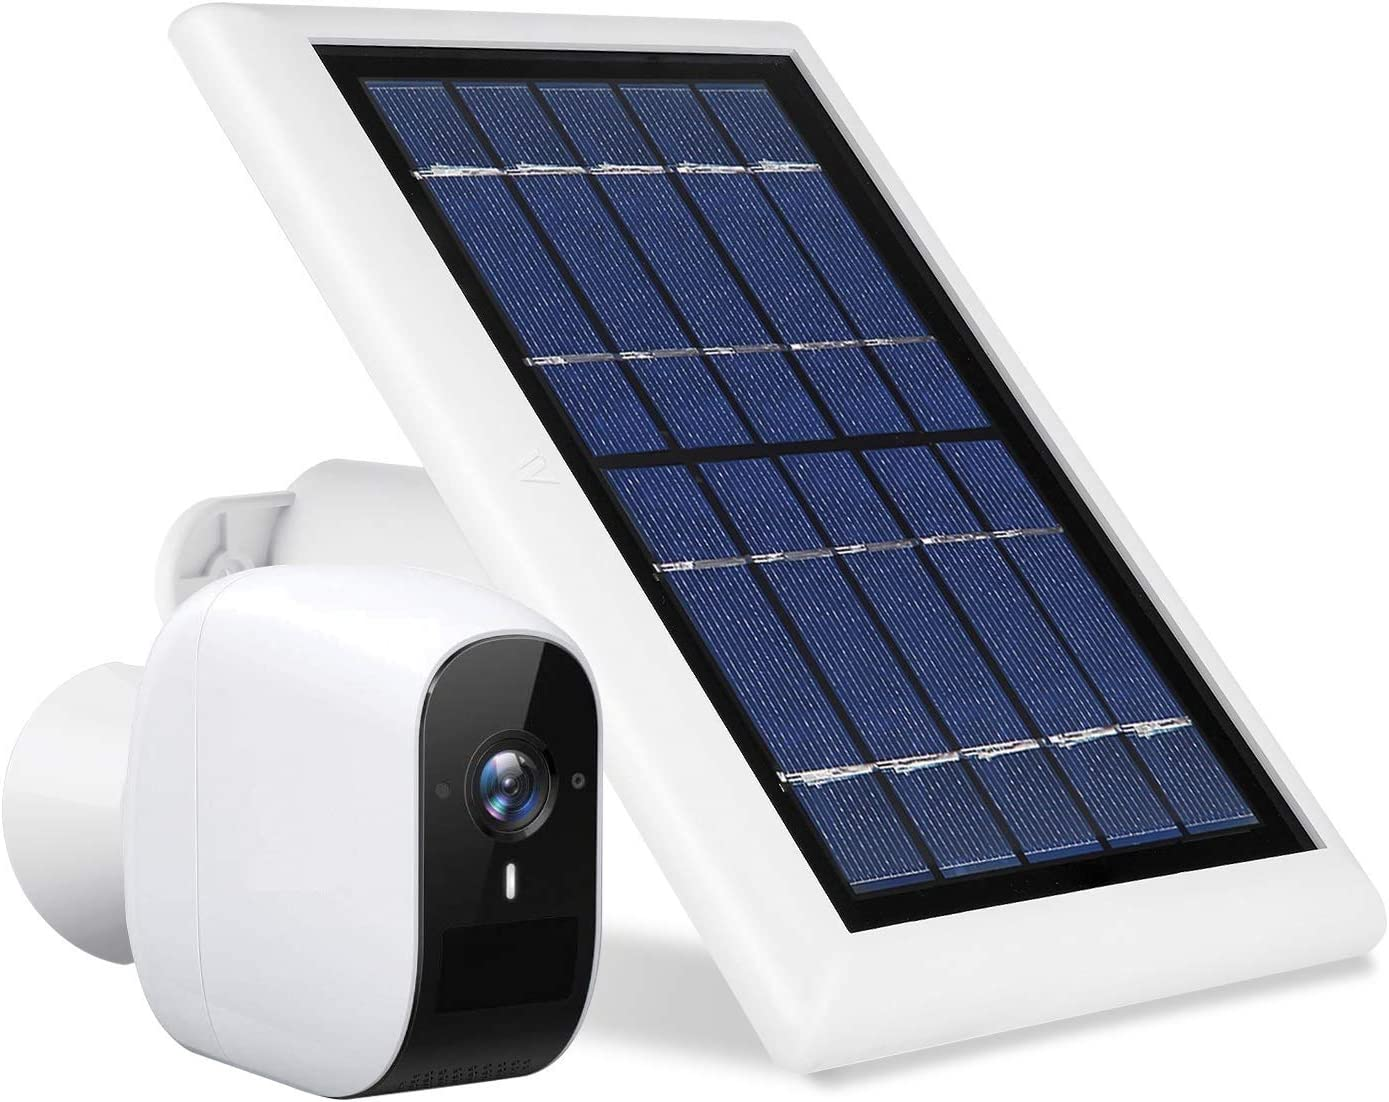 Wasserstein Solar Panel Compatible with eufyCam E Wireless Security Camera ONLY - Power Your eufyCam Surveillance Camera Continuously (White) (NOT Compatible with eufyCam 2/2C)